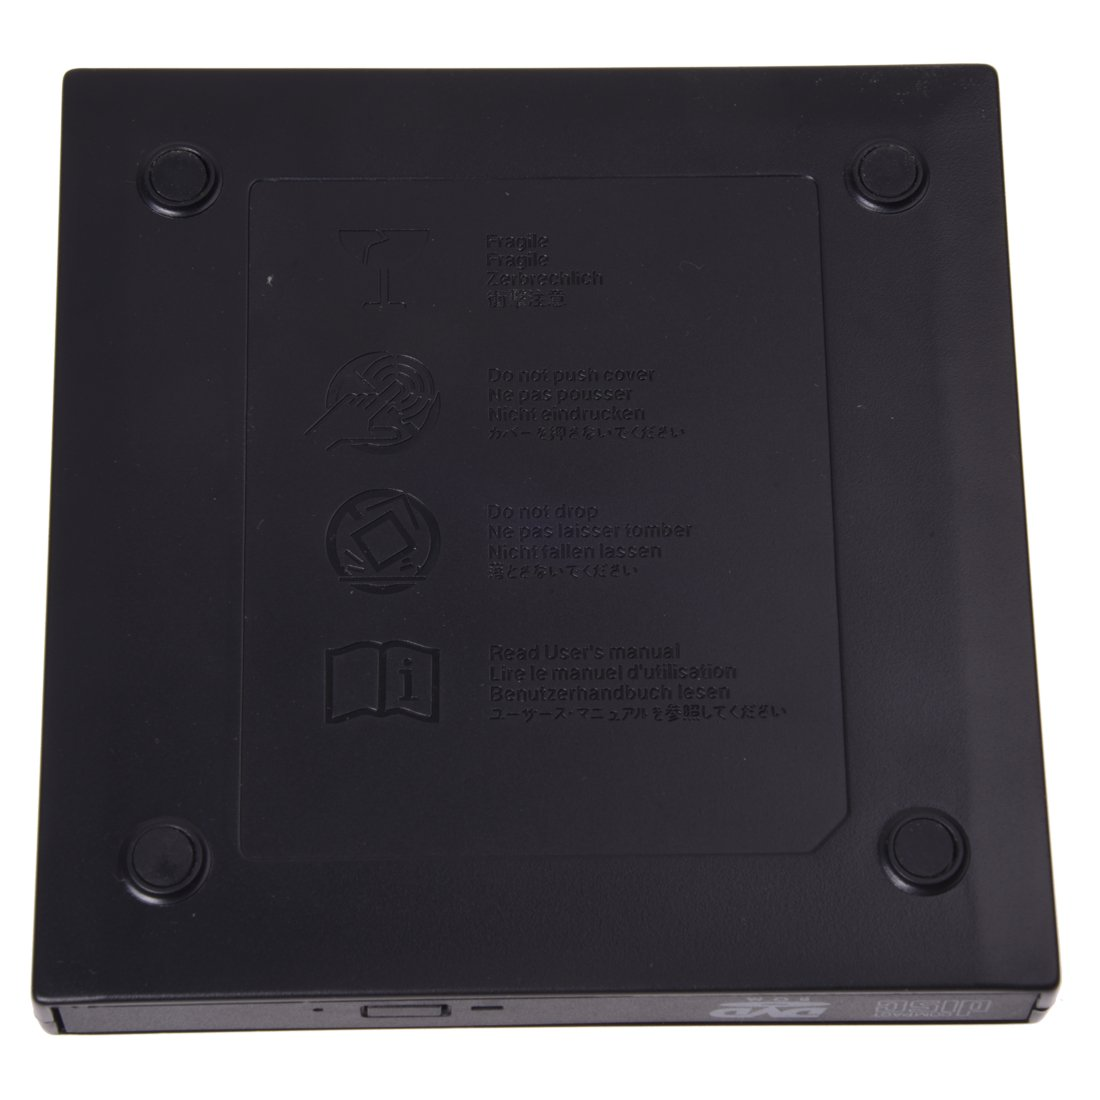 SODIAL (R) USB Caja externa para 12.7mm grabadora de CD / DVD Rom Laptop